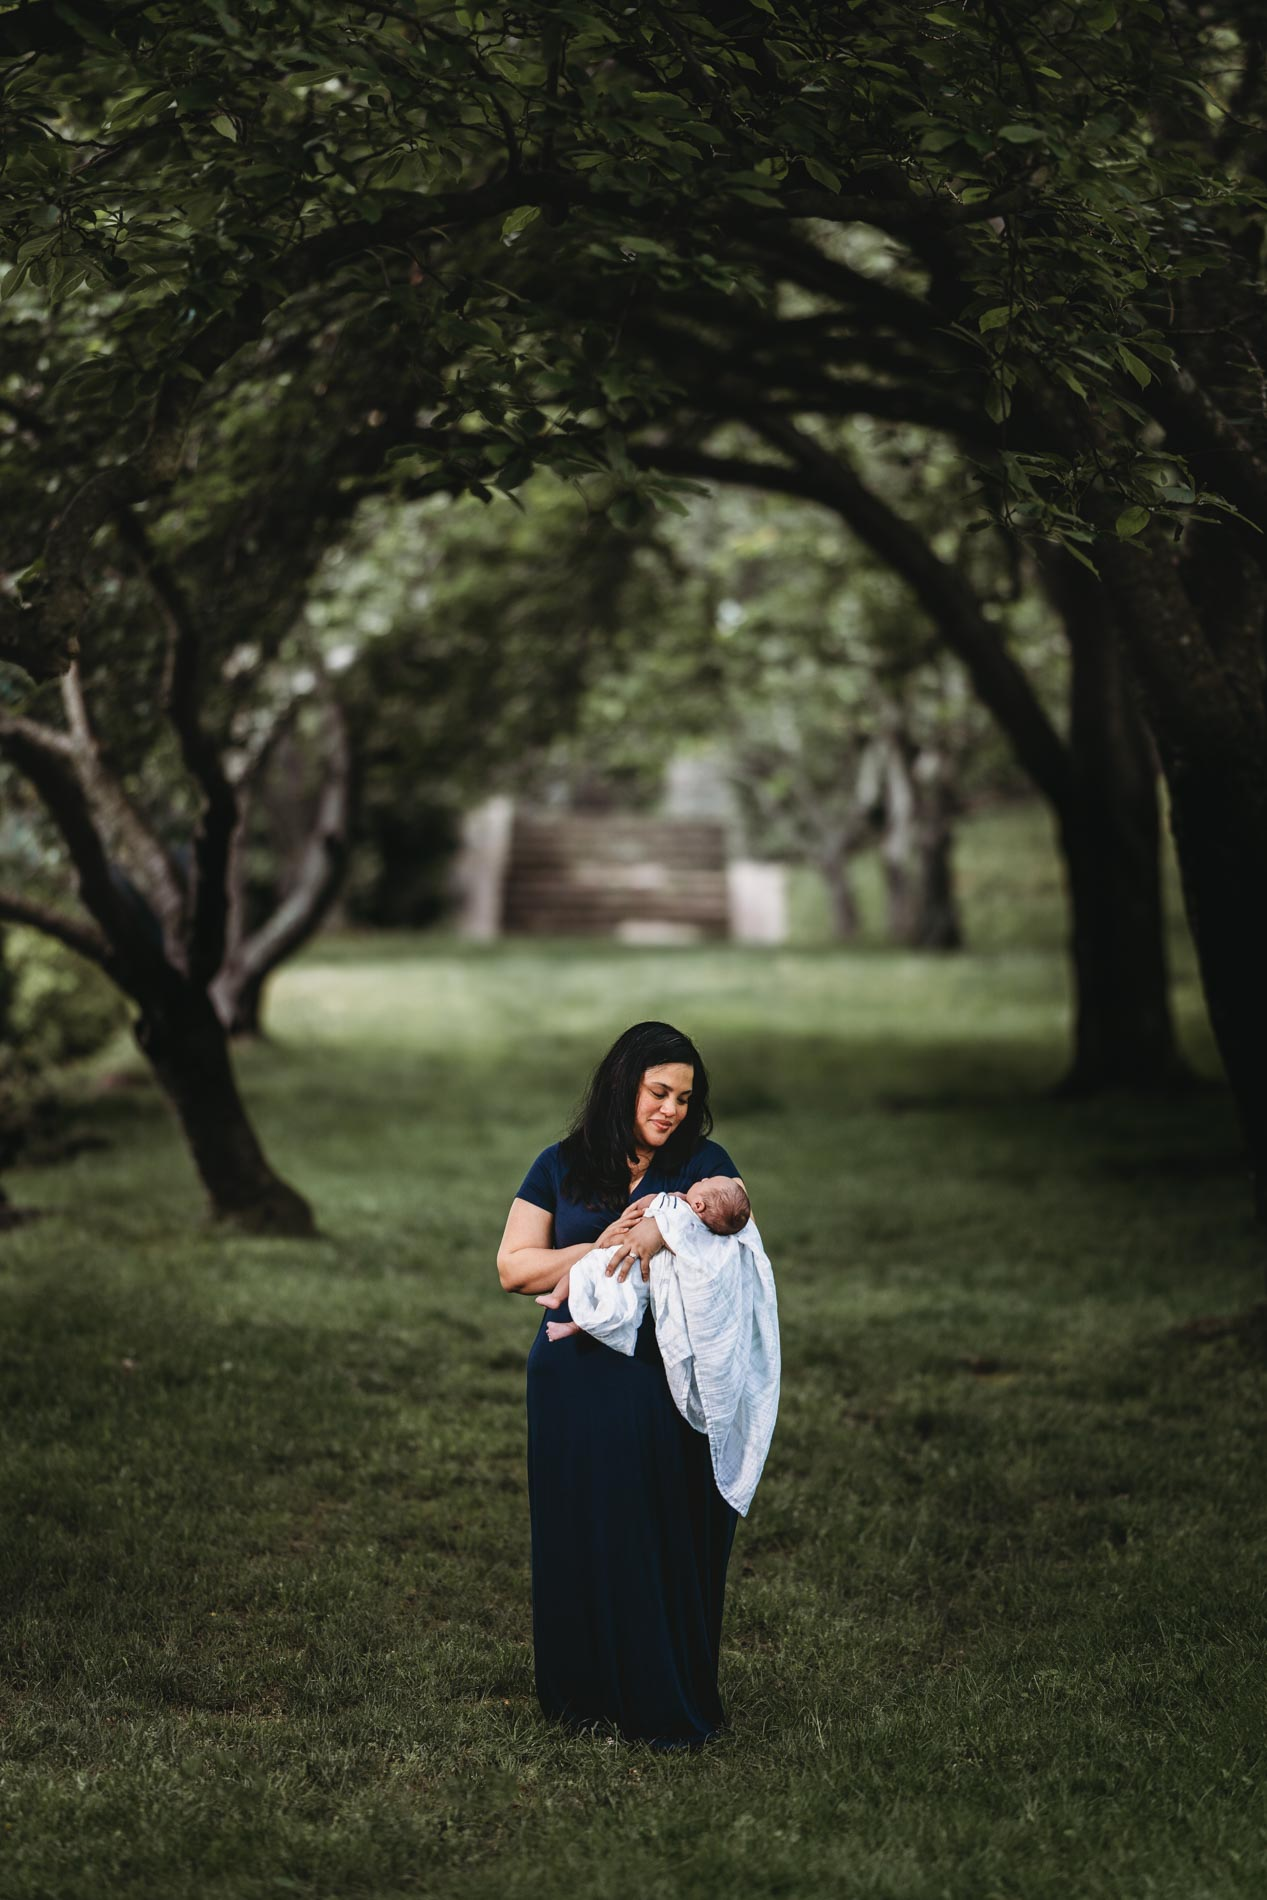 rockville maryland outdoor newborn photographer photography session new mother wearing navy blue dress holding infant in white swaddle outdoors under canopy of trees